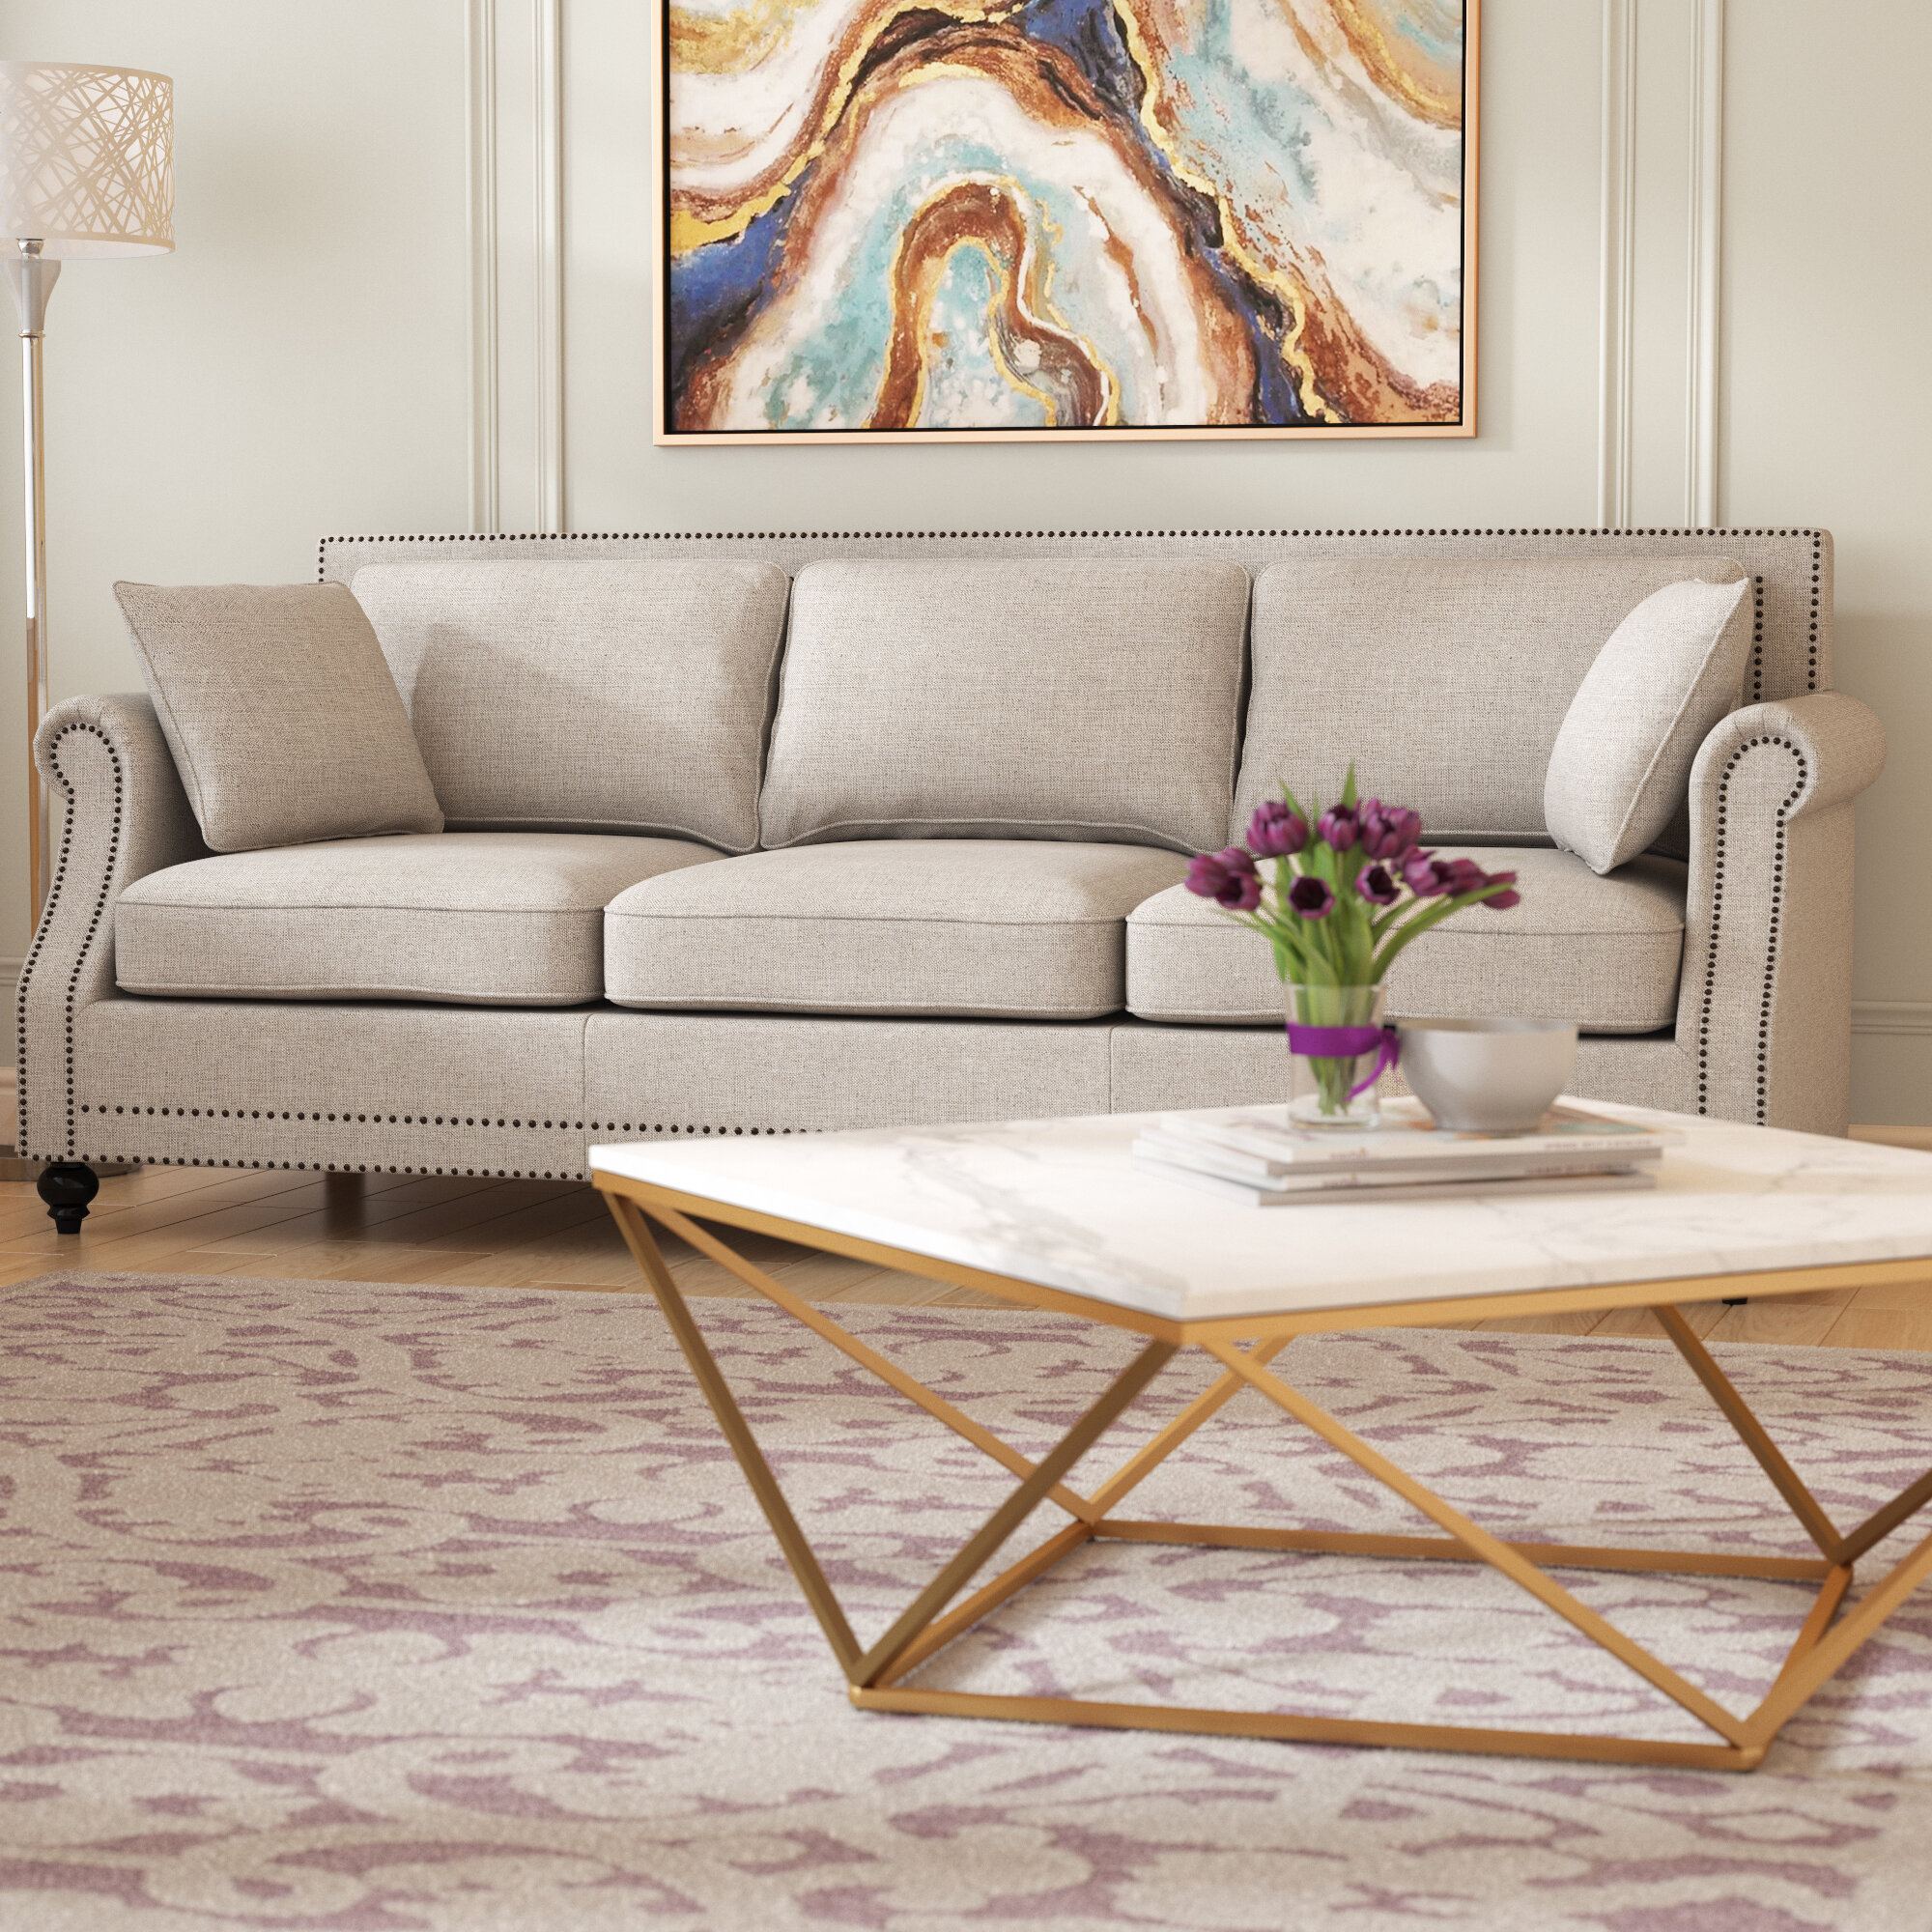 Willa arlo interiors lore sofa reviews wayfair